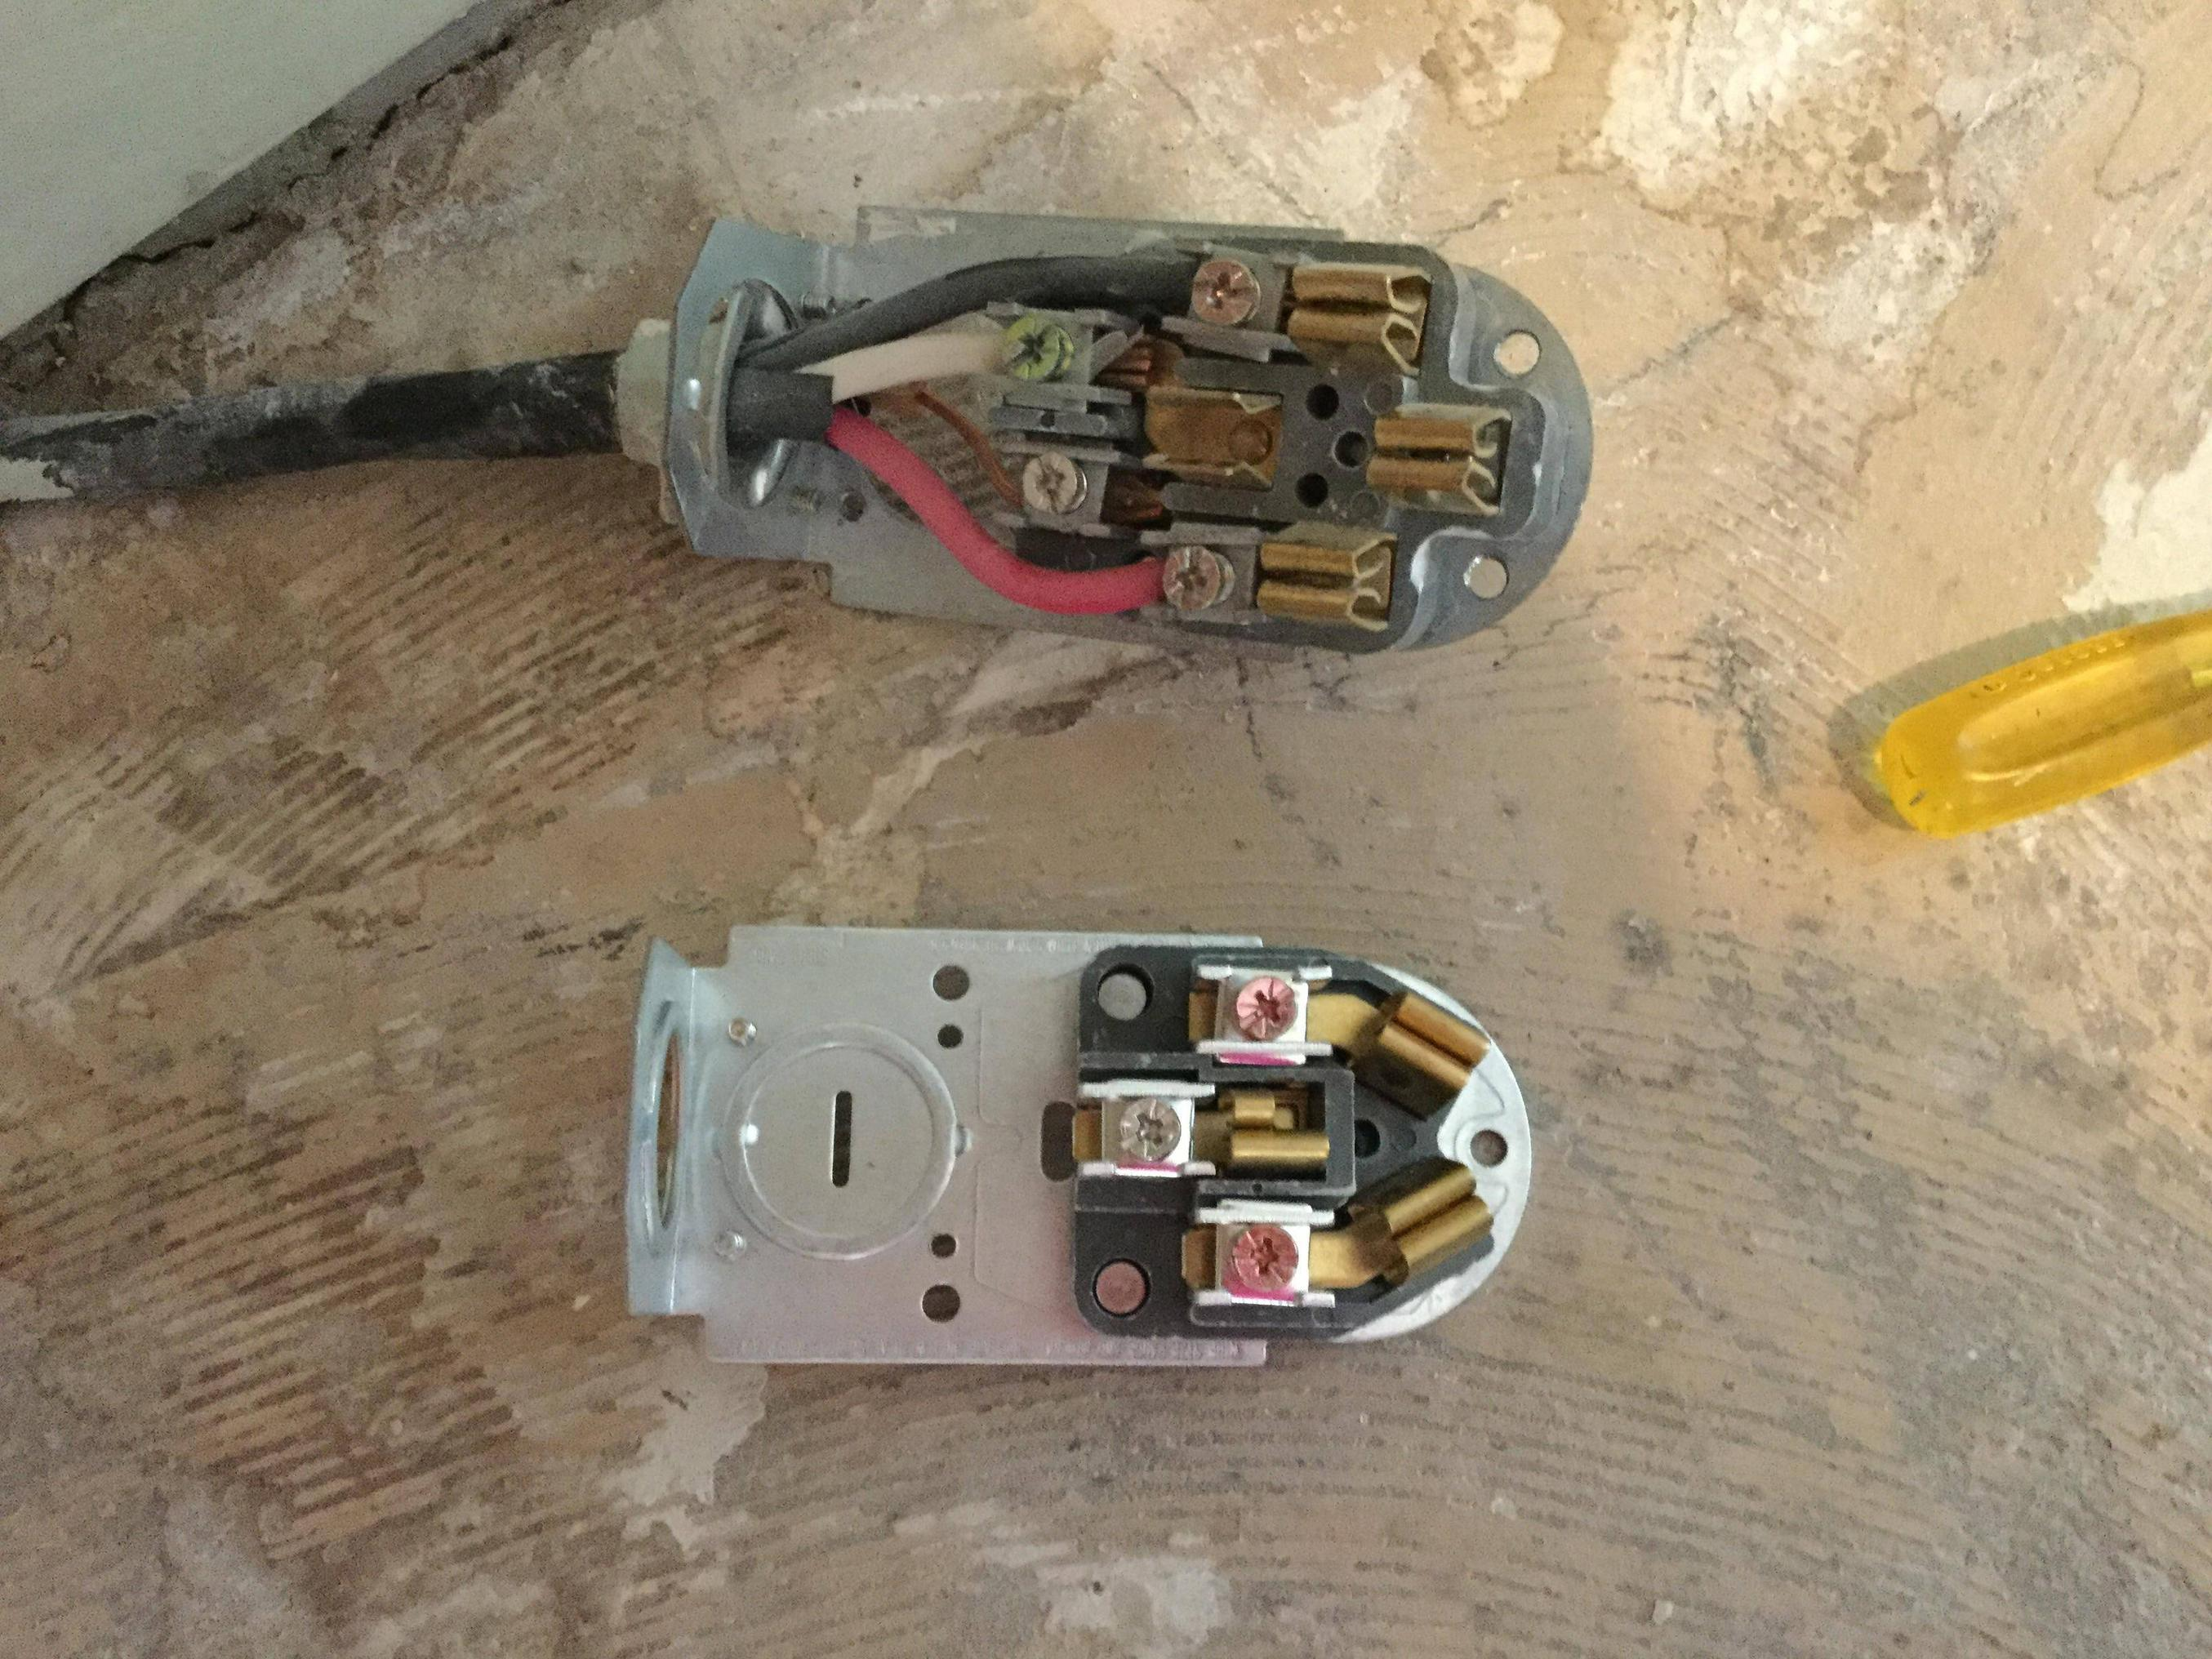 Wiring 4 Wire 220 To 3 Prong Plug On Wiring Diagram 4 Wire Stove Oven